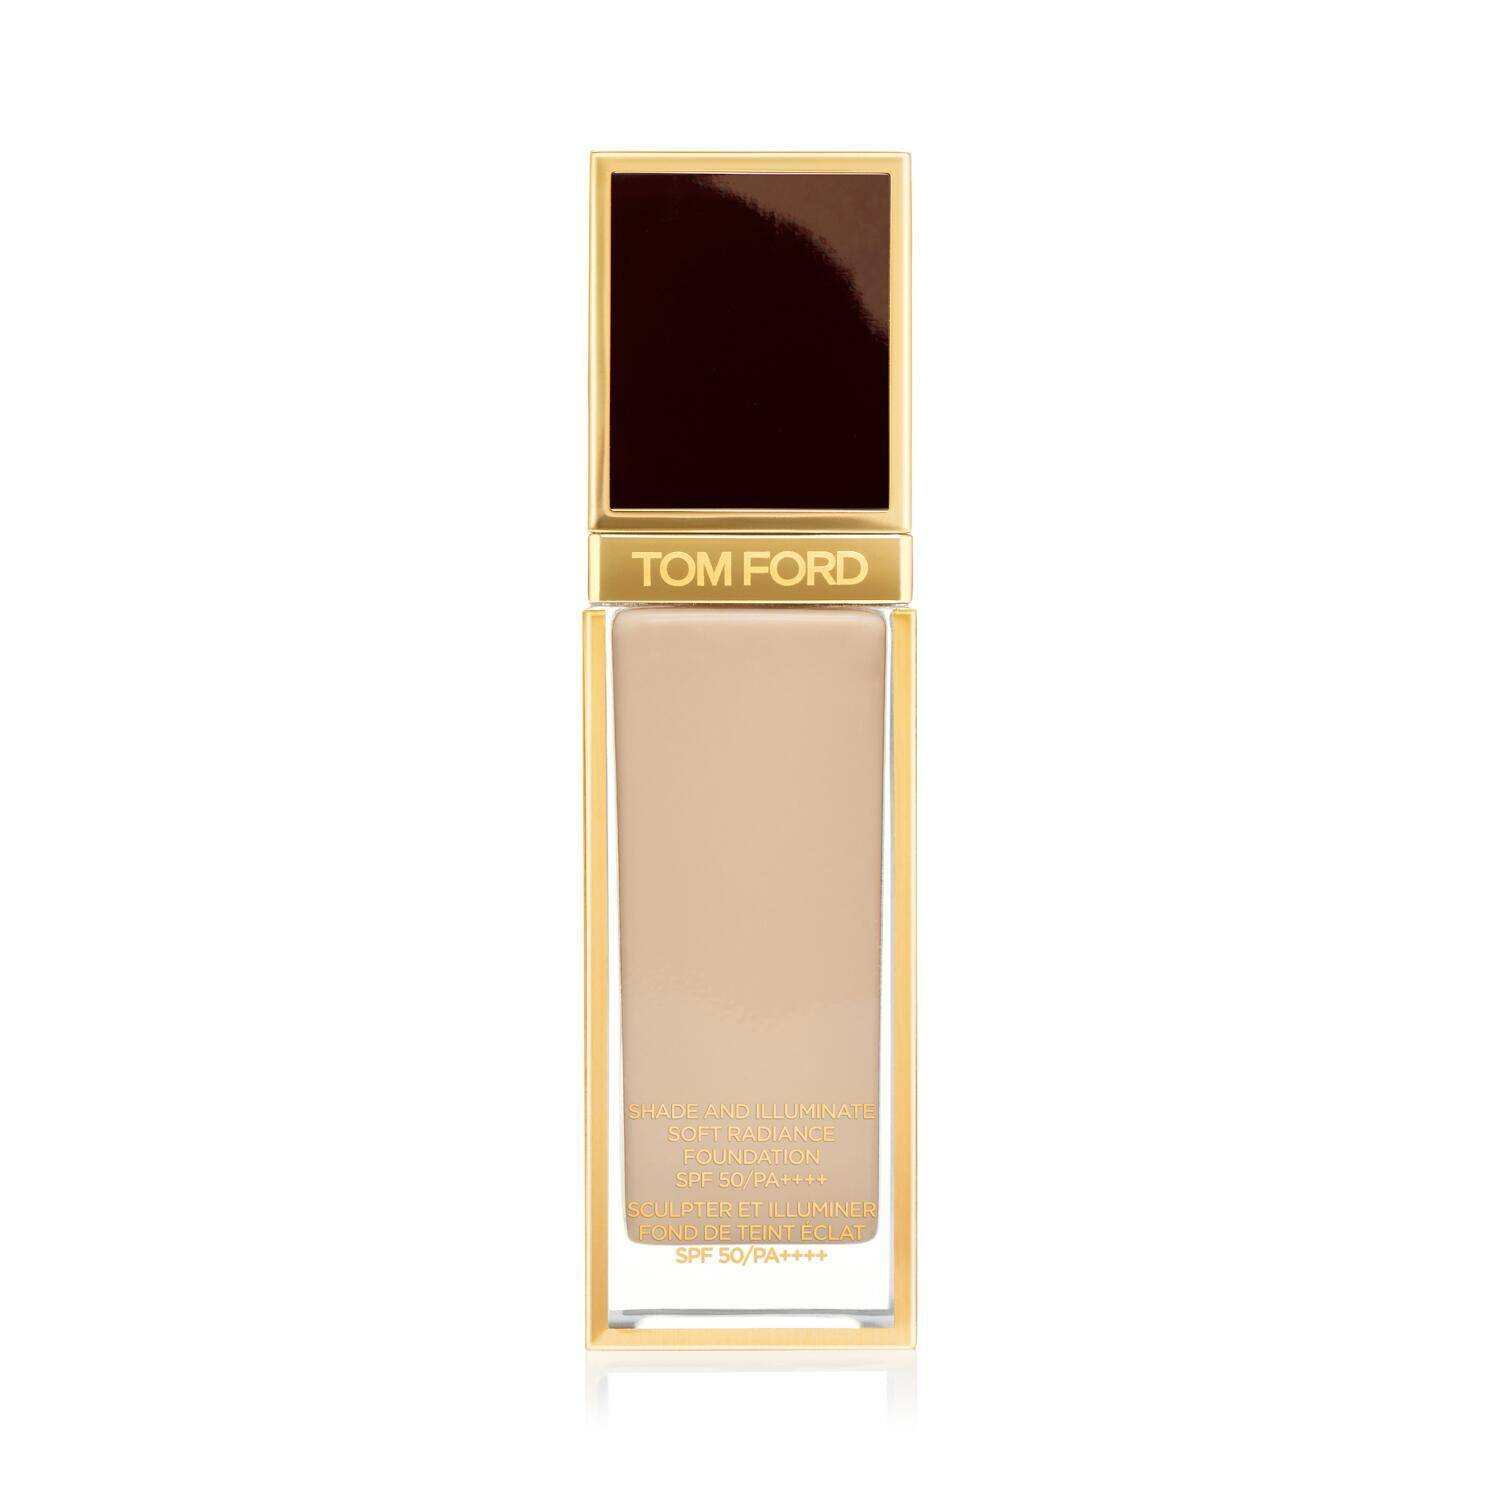 TOM FORD Shade & Illuminate Foundation (Champagne | 30 ml) Make Up, Gesicht, Foundation Cosmetics, Face von TOM FORD